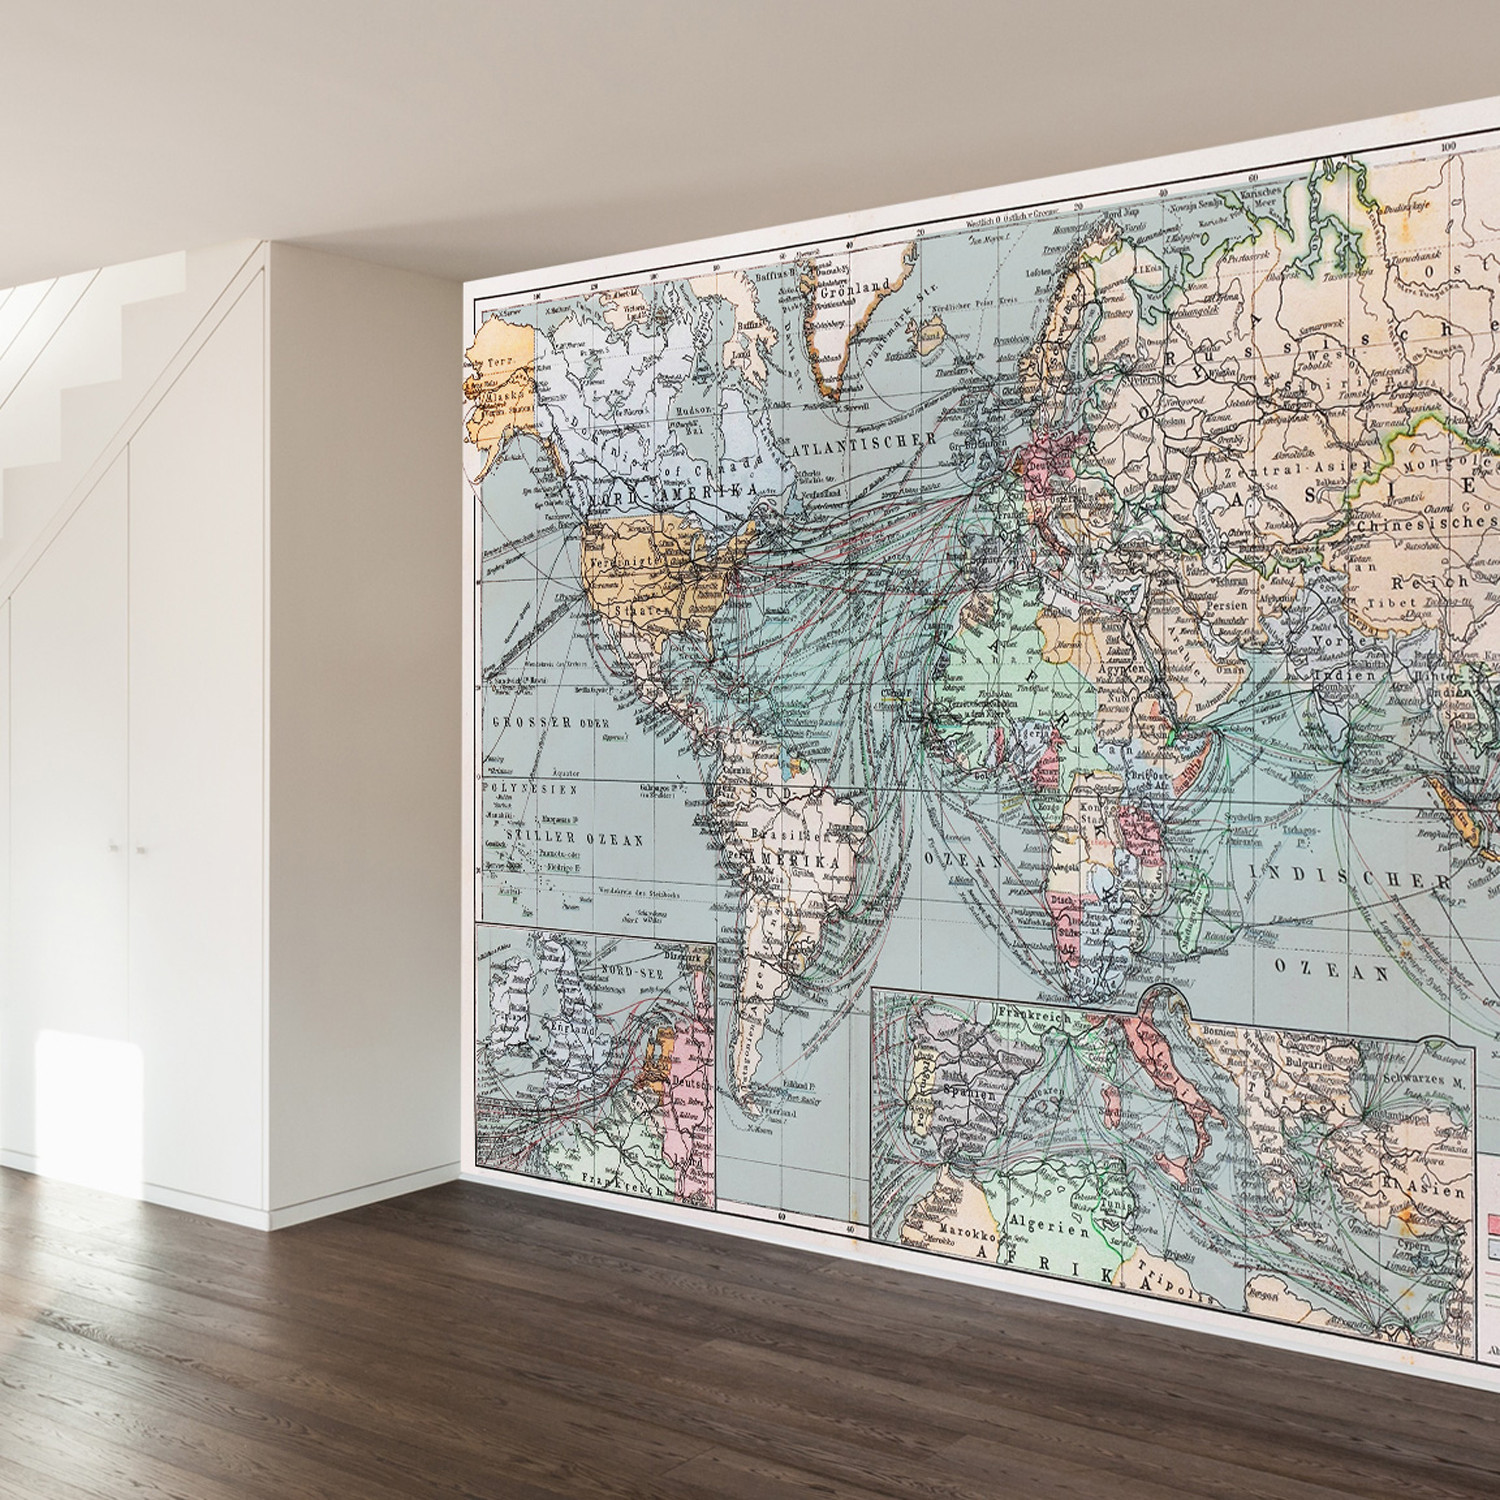 Vintage world map wall mural decal 100l x 100w walls need vintage world map wall mural decal 100l x gumiabroncs Choice Image